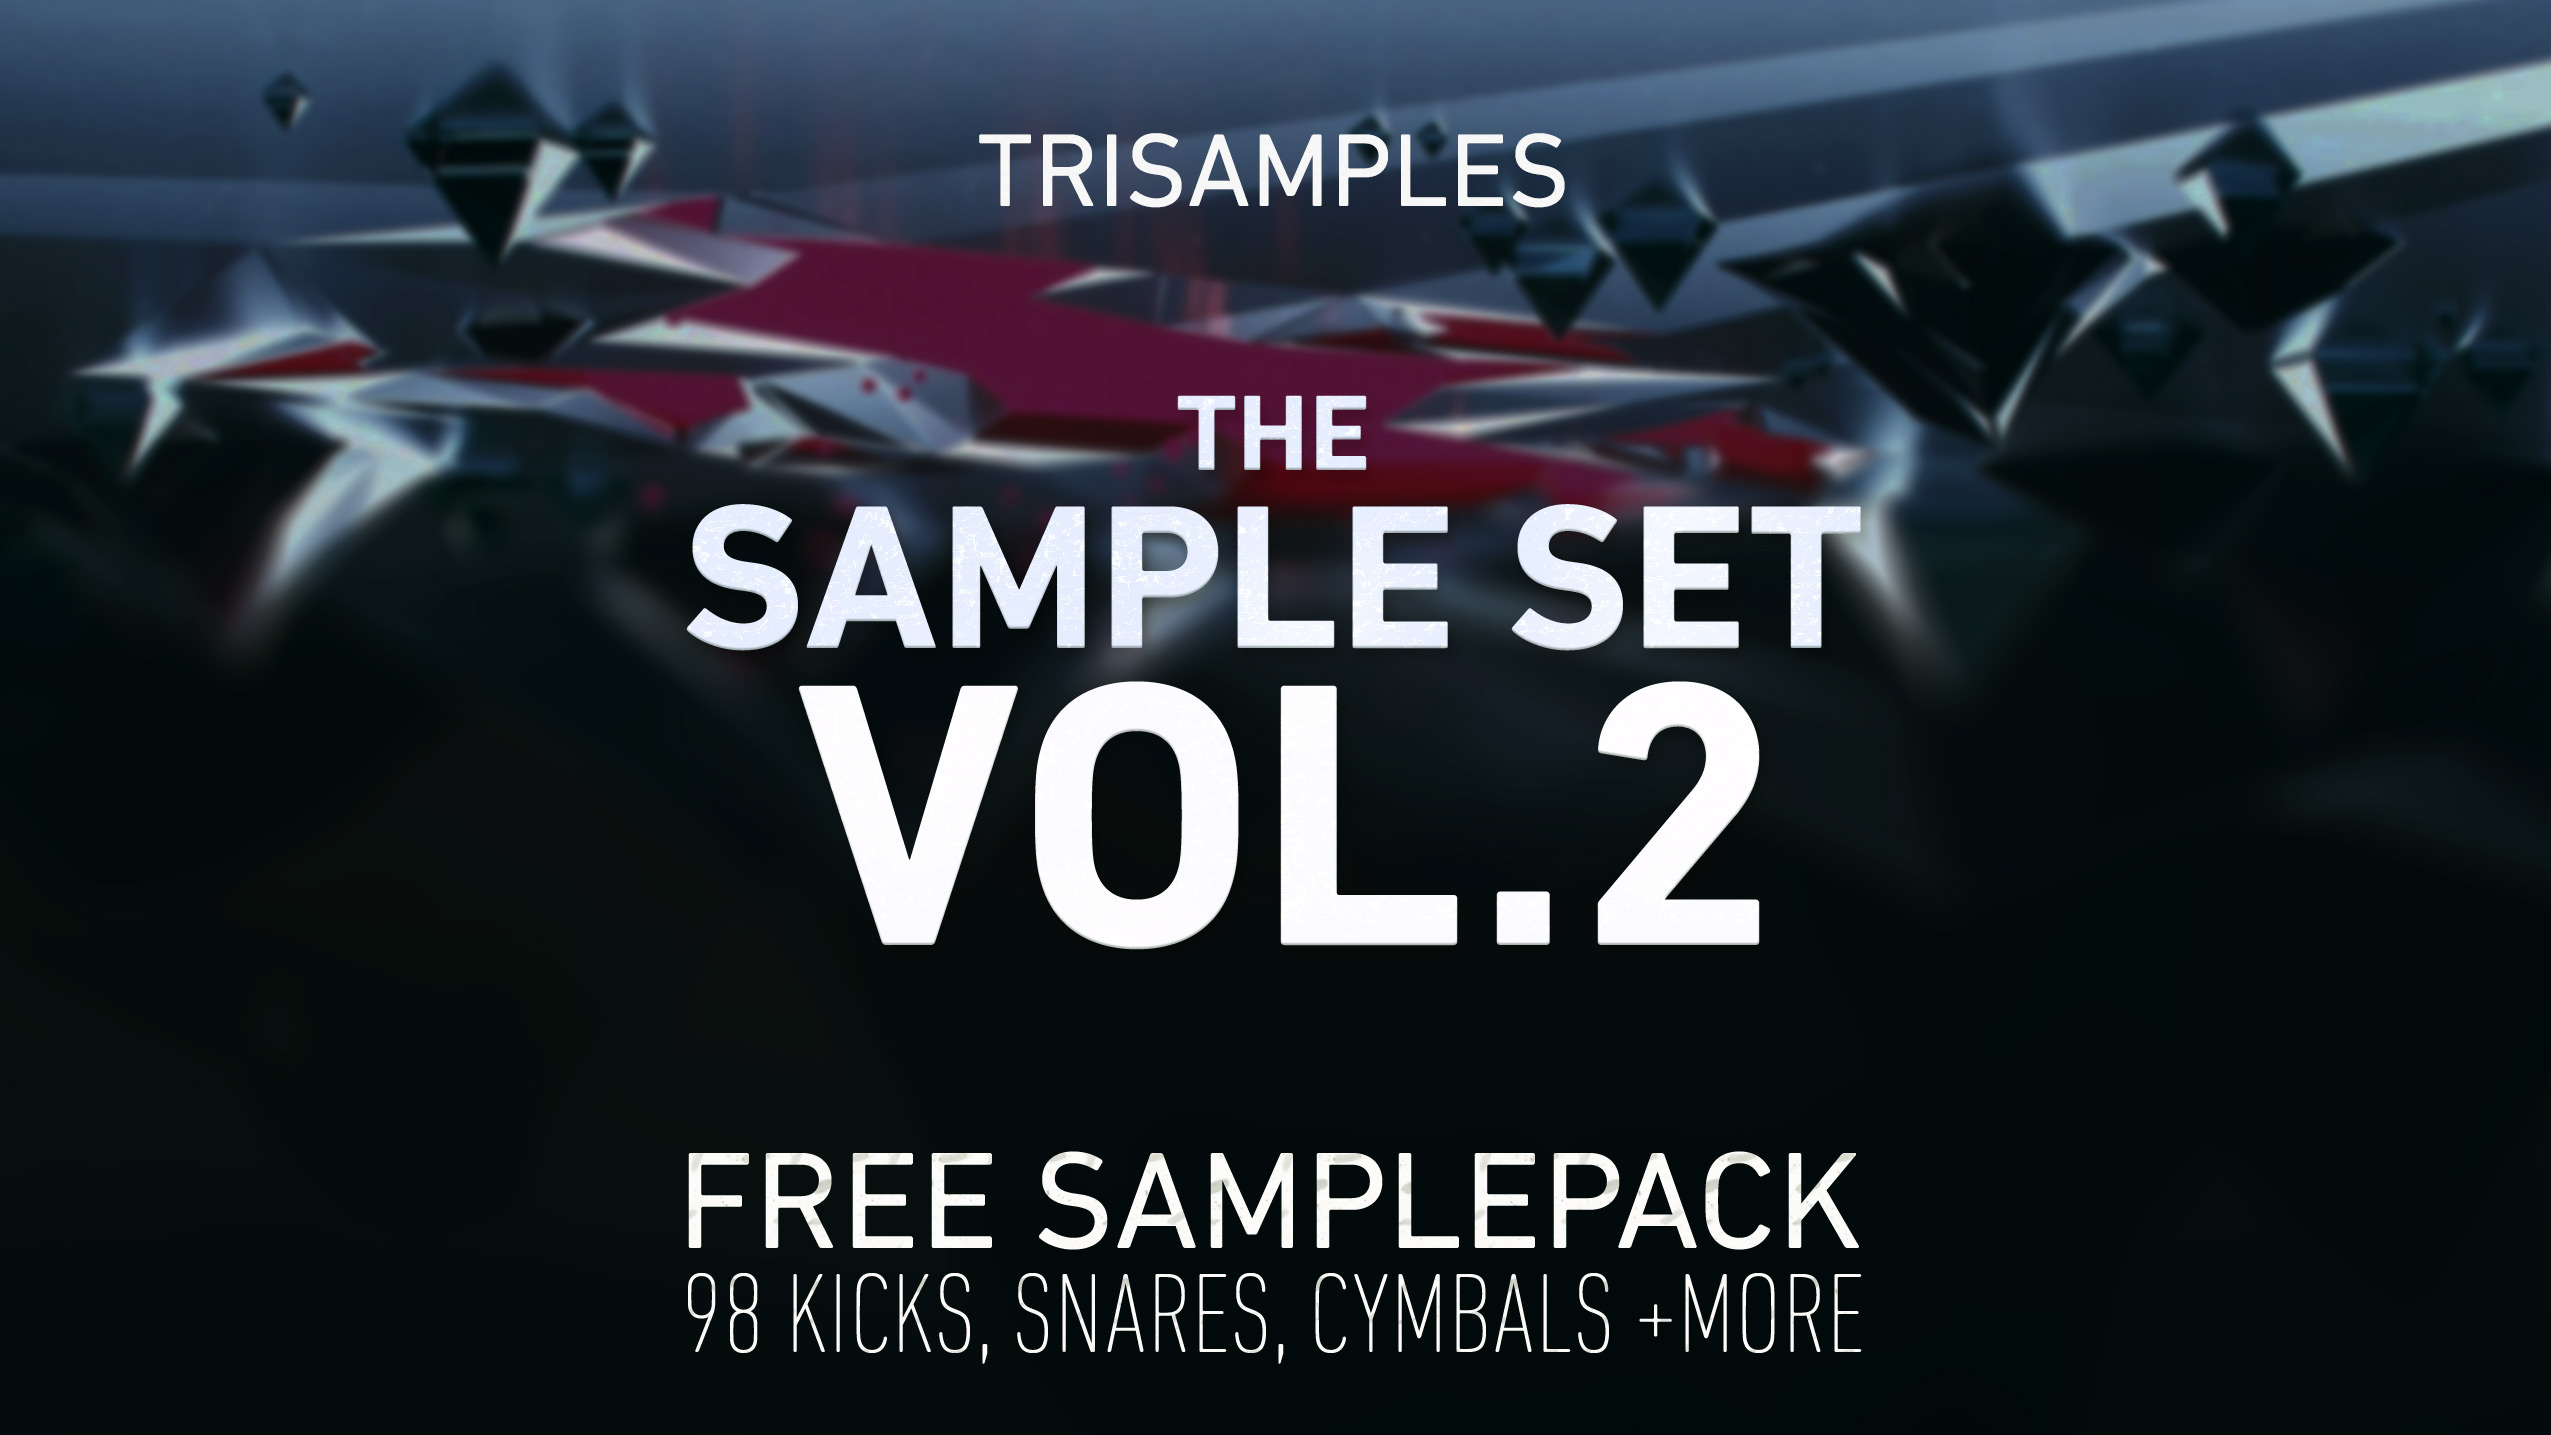 TriSamples---The-Sample-Set-Vol-2-Artwork